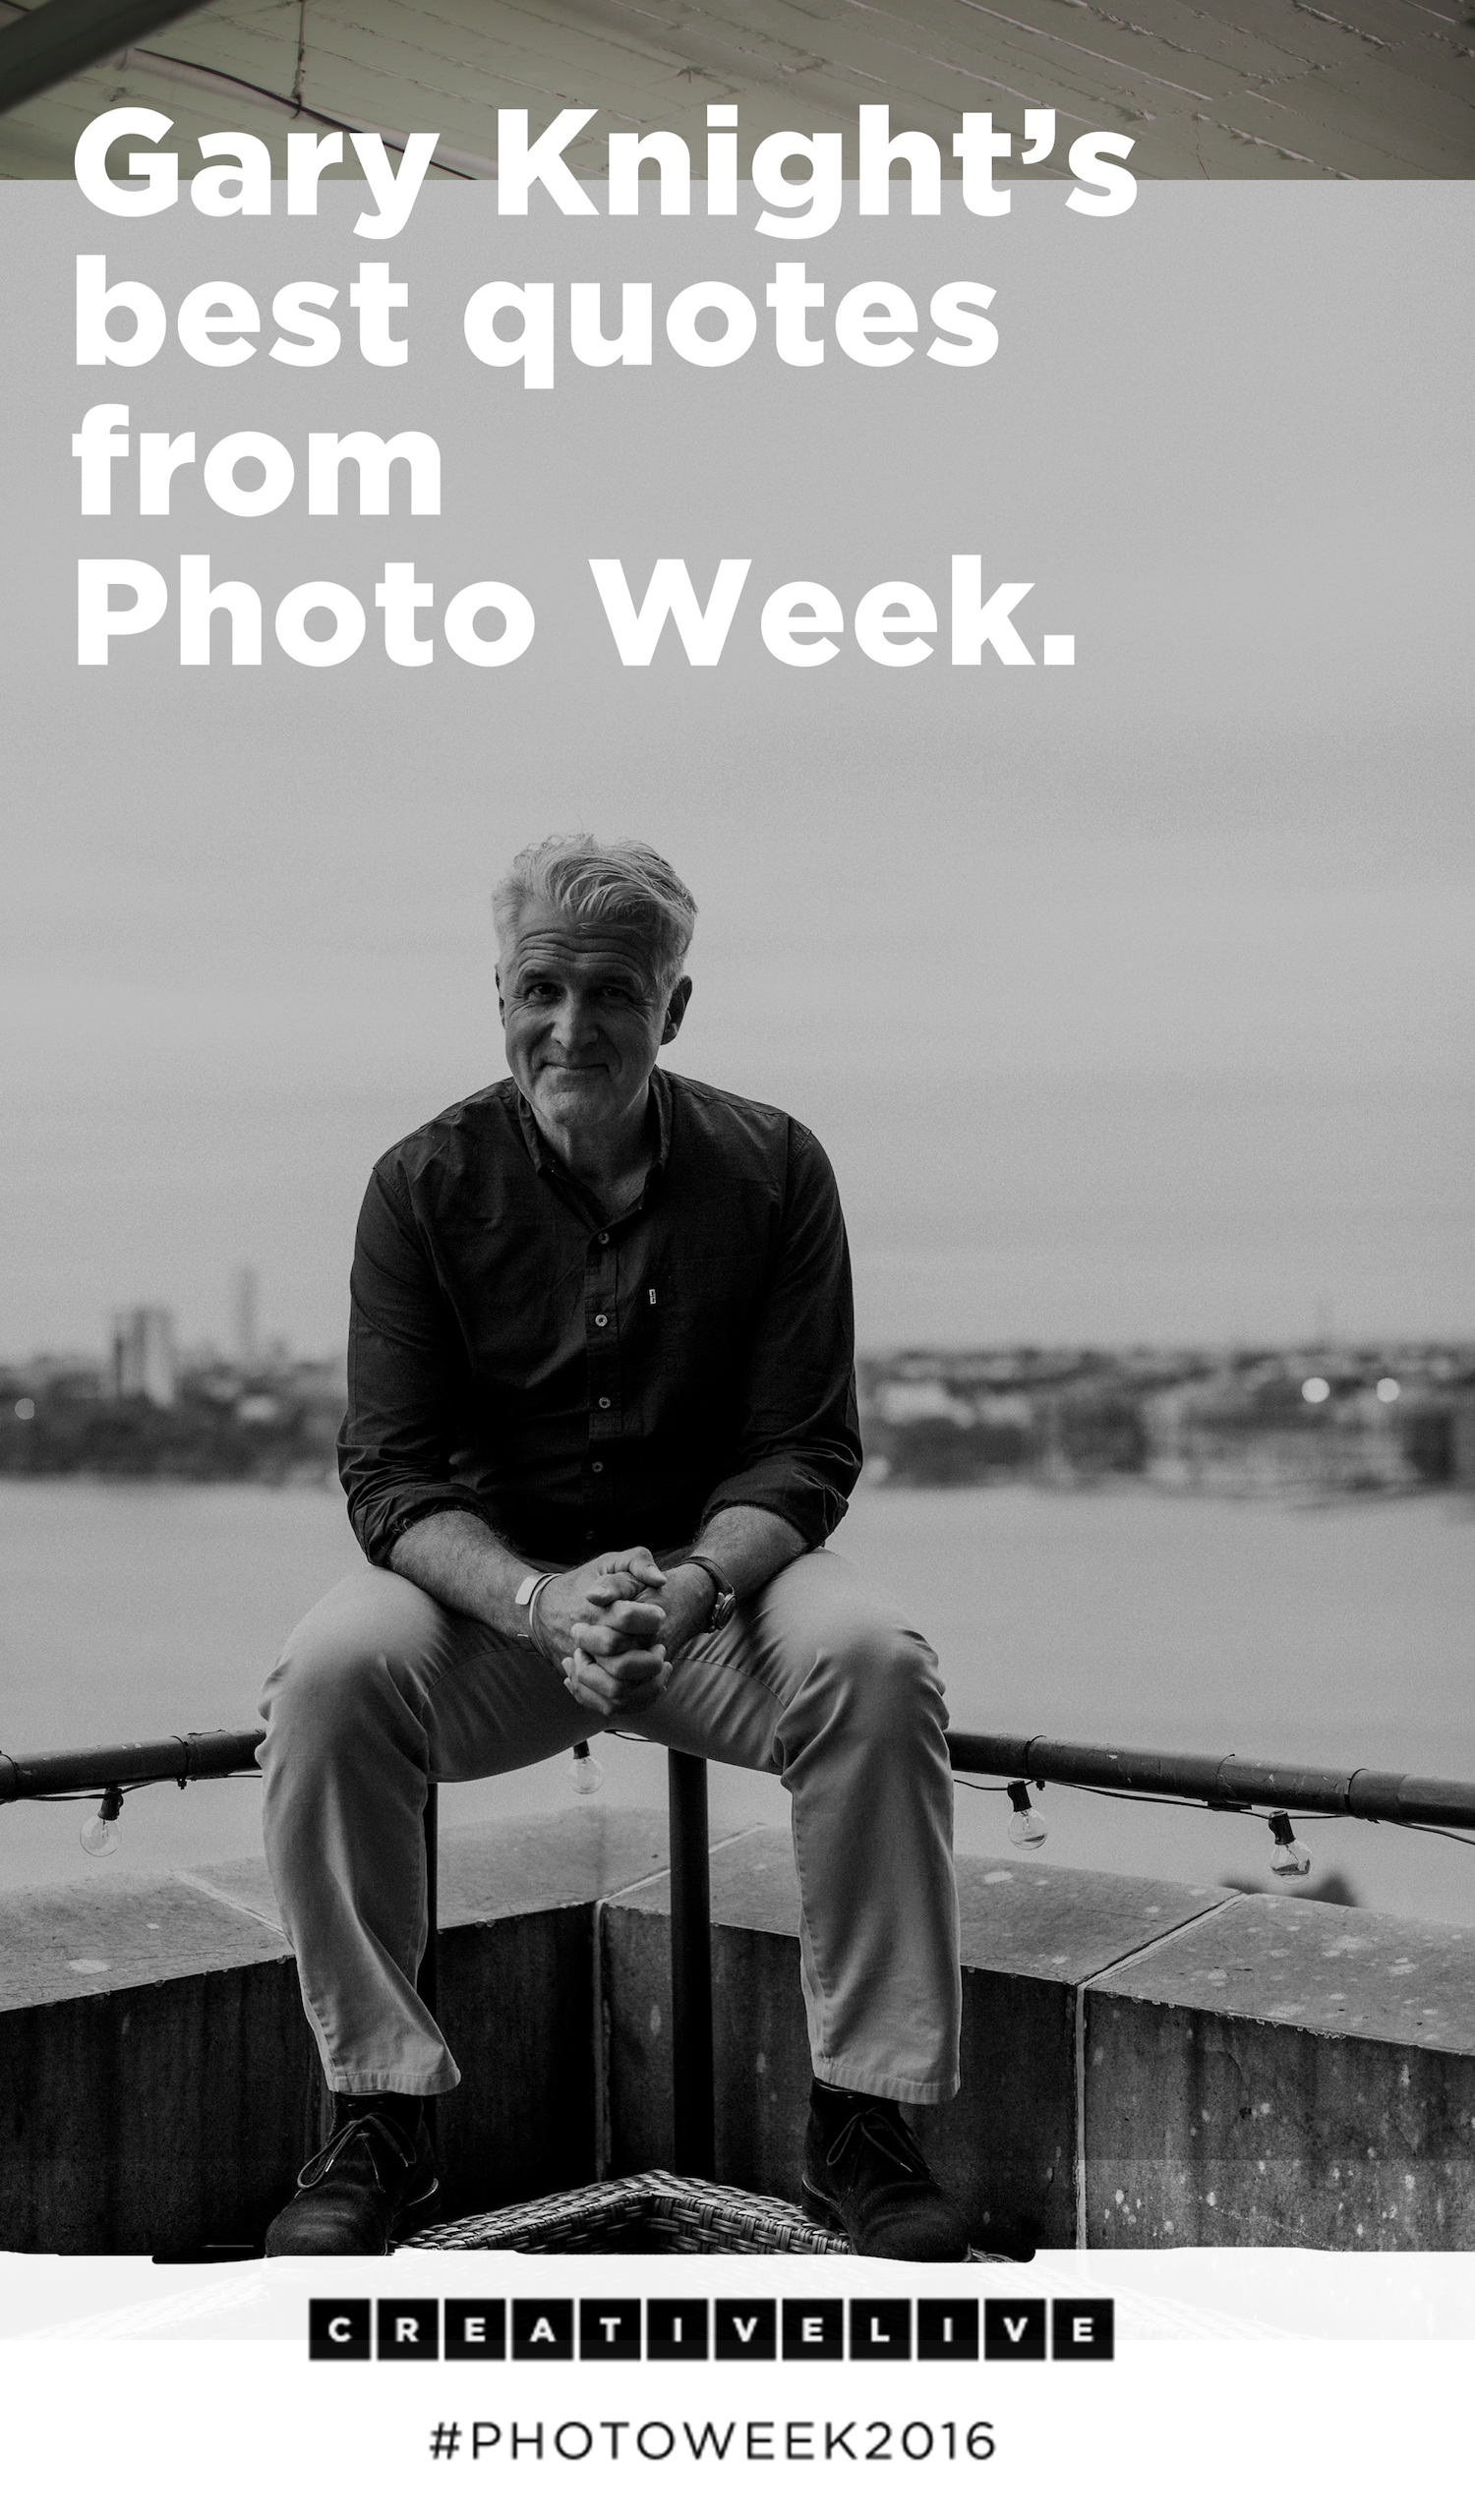 Photojournalist Gary Knight has had an amazing career, and he shares some of his best thoughts, insights, and moments in his Photo Week 2016 presentation. Get his best quotes in this blog post!